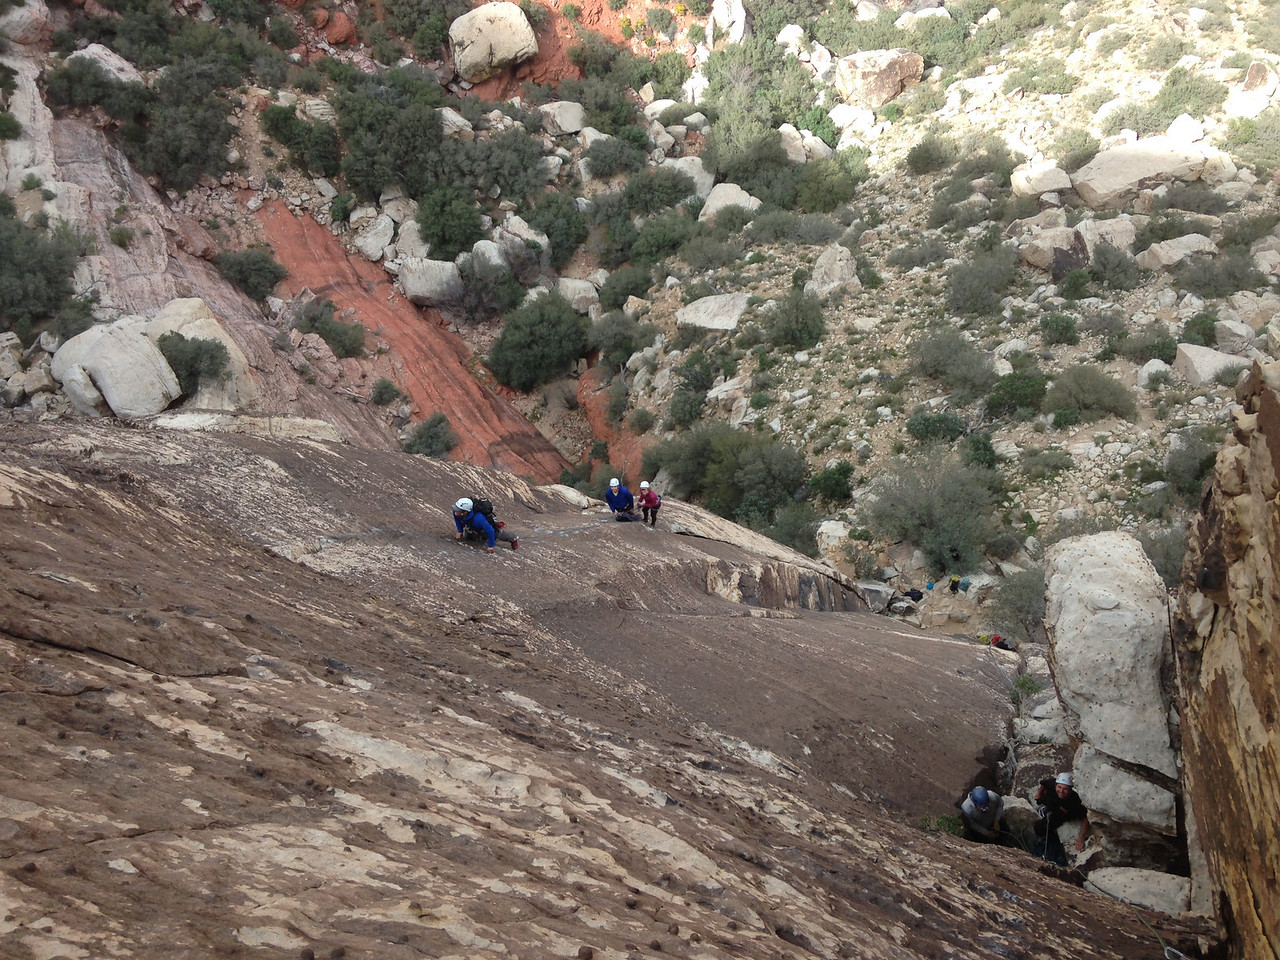 Looking down Lotta Balls Wall.  Tryhardral on the right, Lotta Balls on the left.  AAI guide Chad leading on the left.